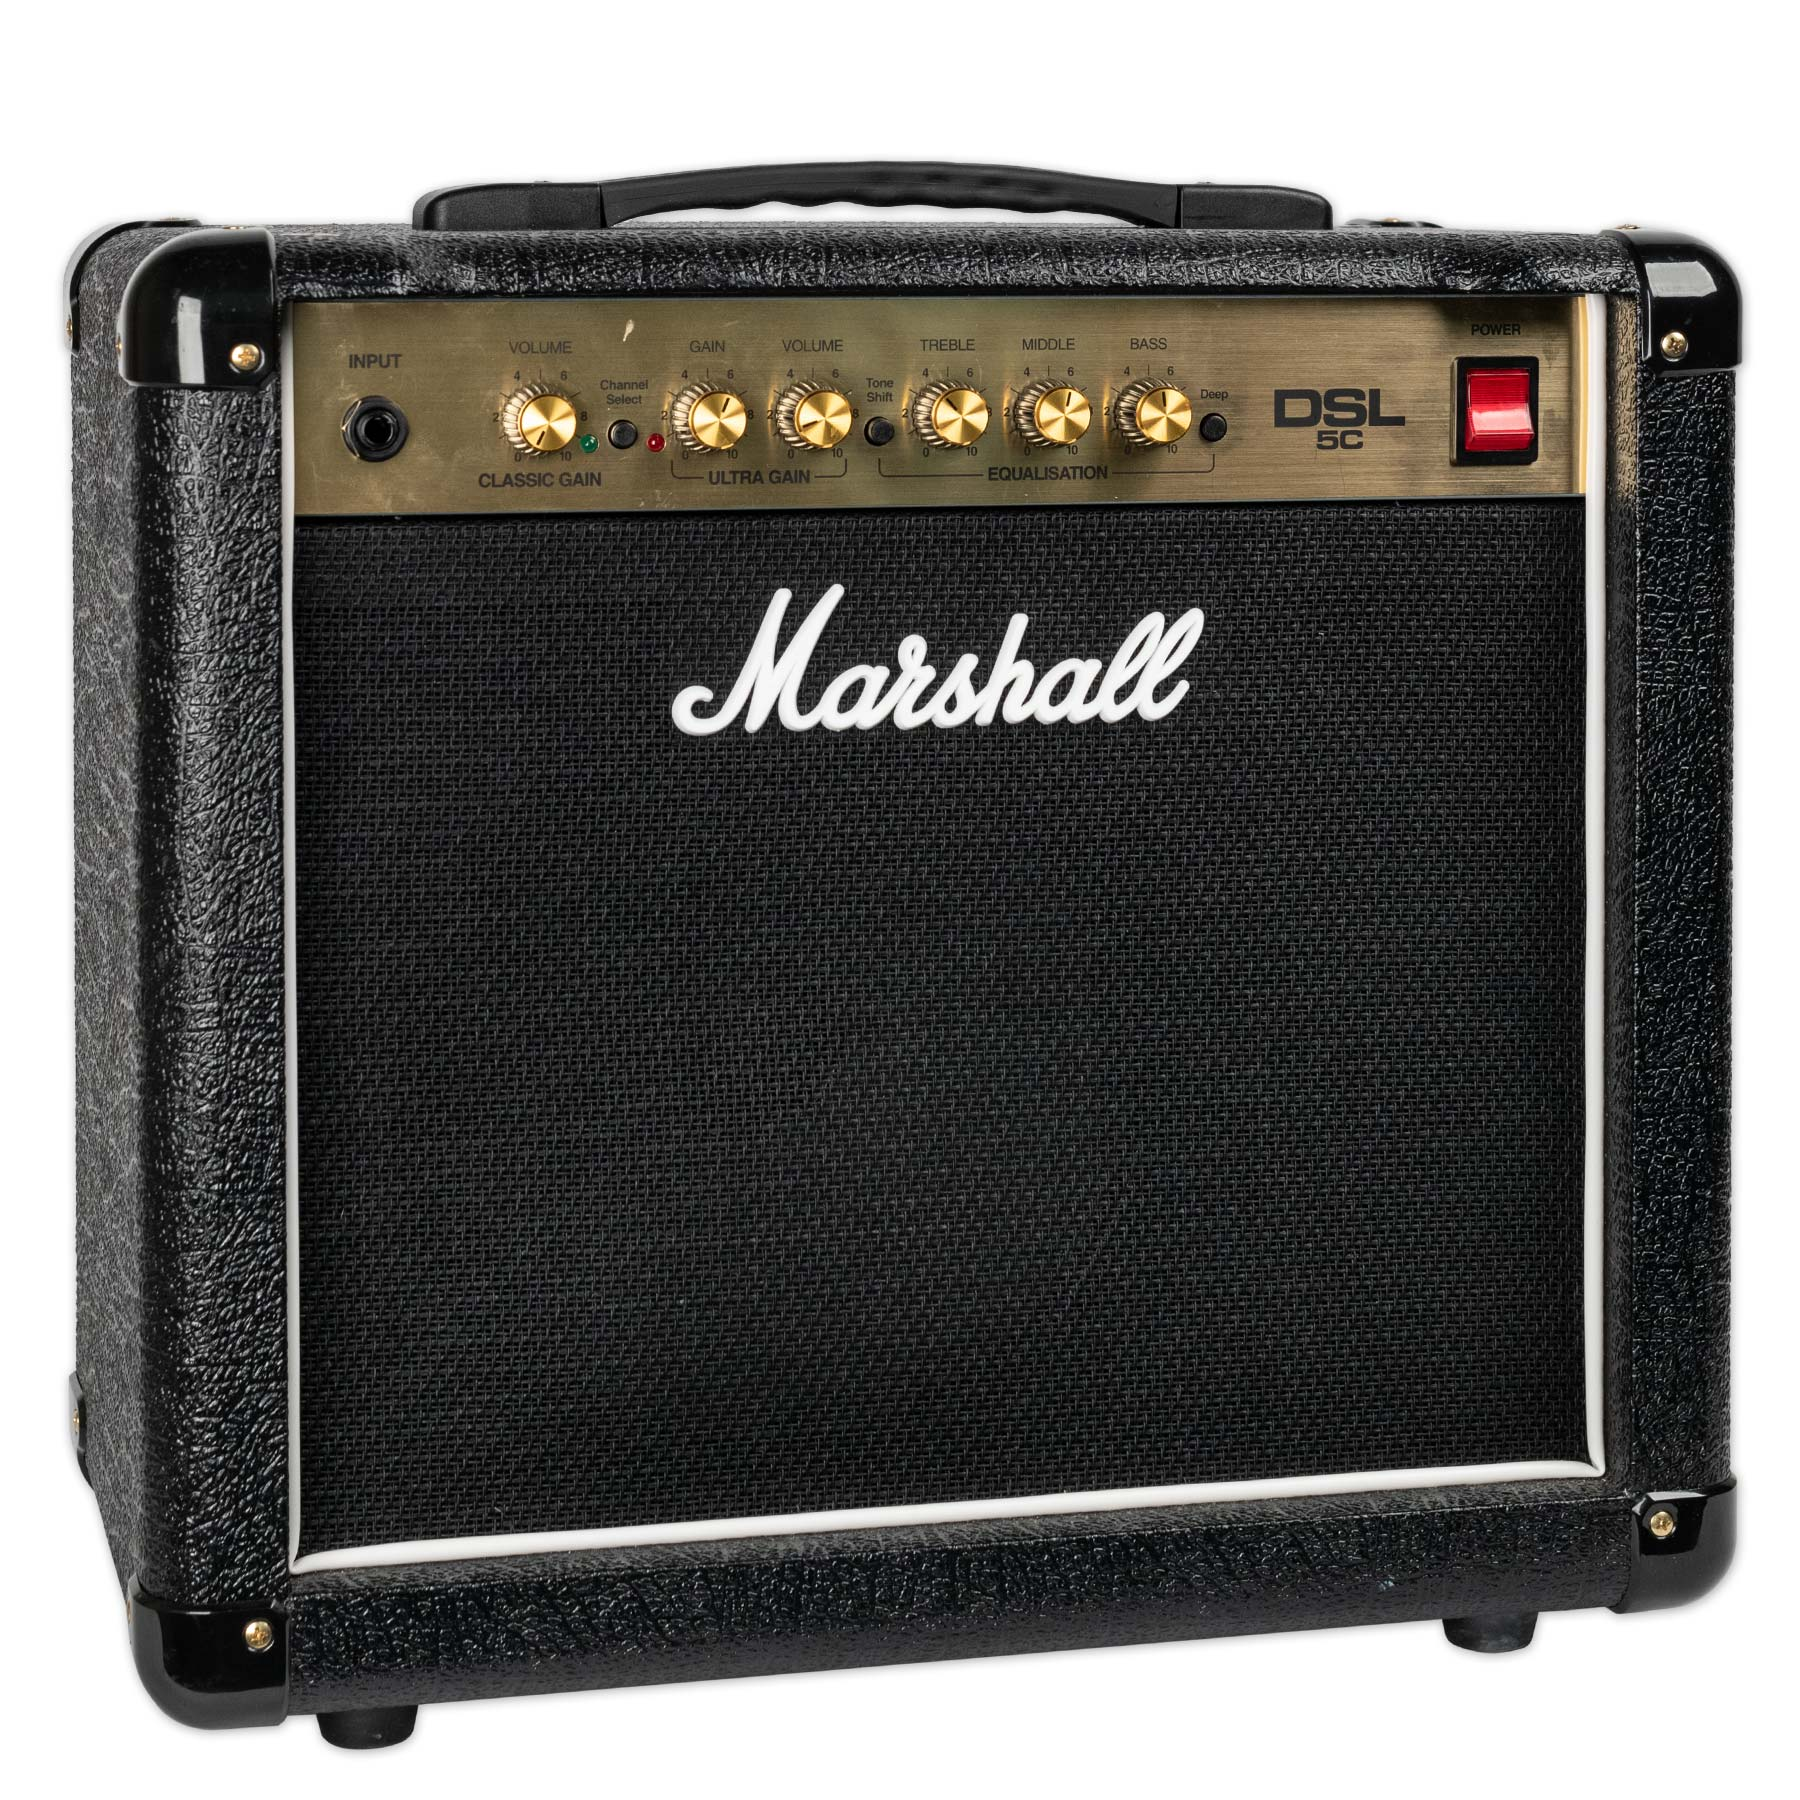 USED MARSHALL DSL5C COMBO AMPLIFIER